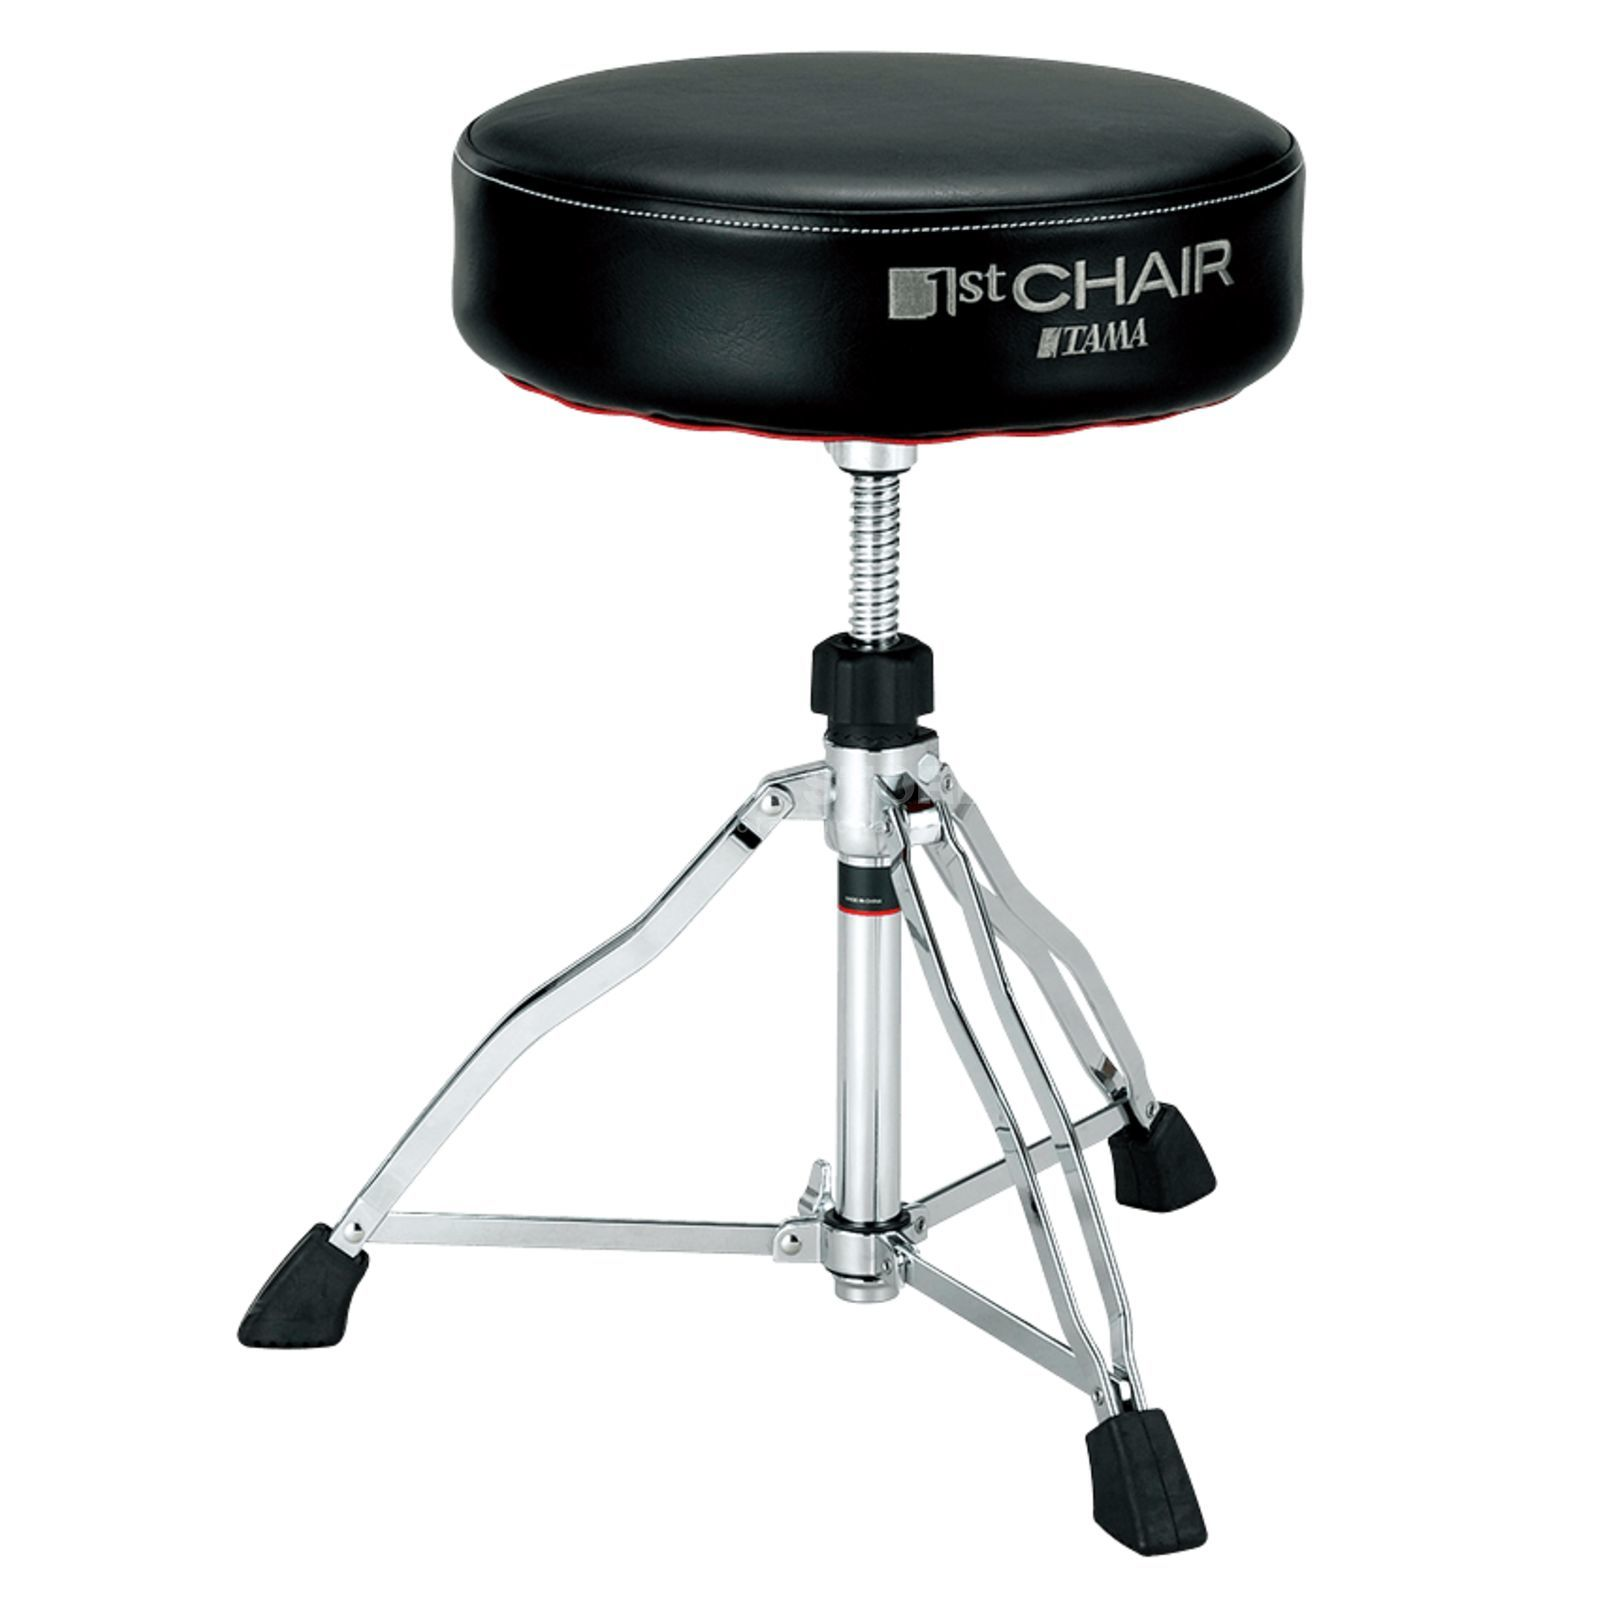 Tama Drum Throne 1st Chair HT430B Product Image